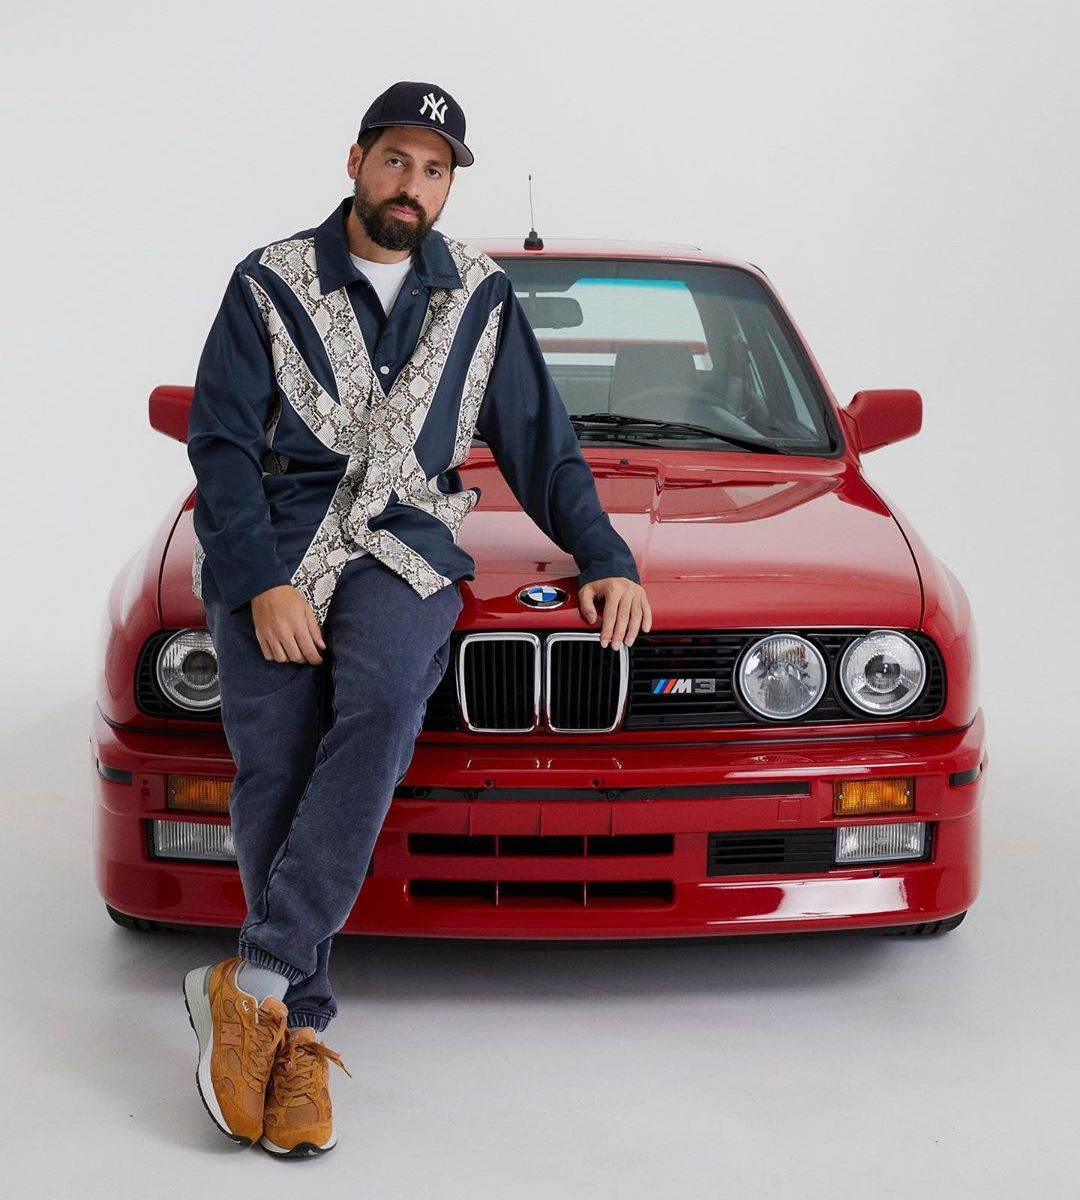 Kith Founder Ronnie Fieg with his BMW M3 E30